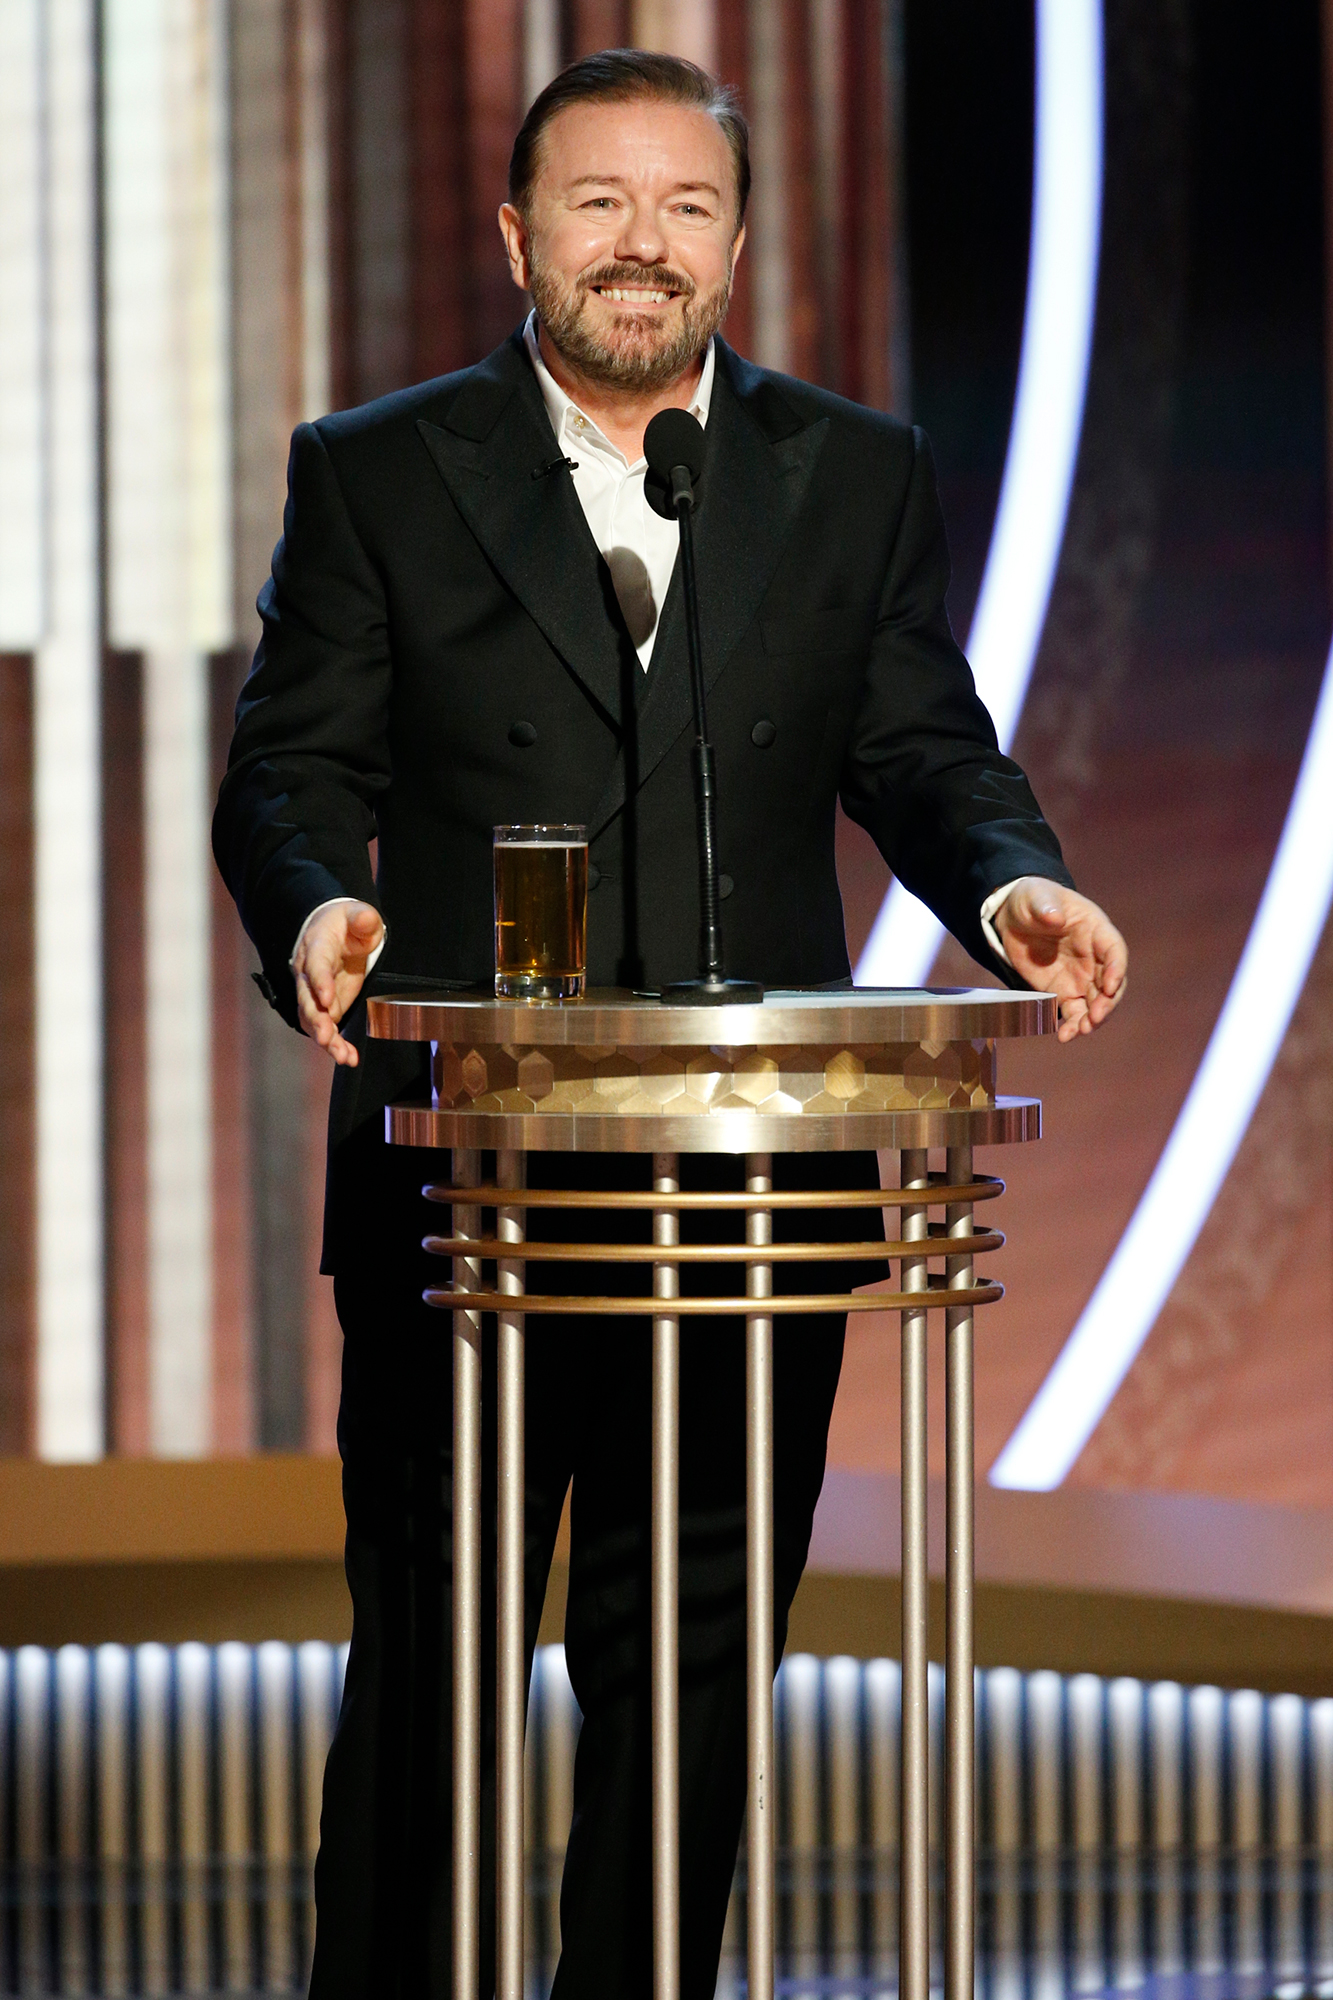 Golden Globes 2020 Host Ricky Gervais Nails Opening Monologue With Jokes About 'Cats' and Felicity Huffman